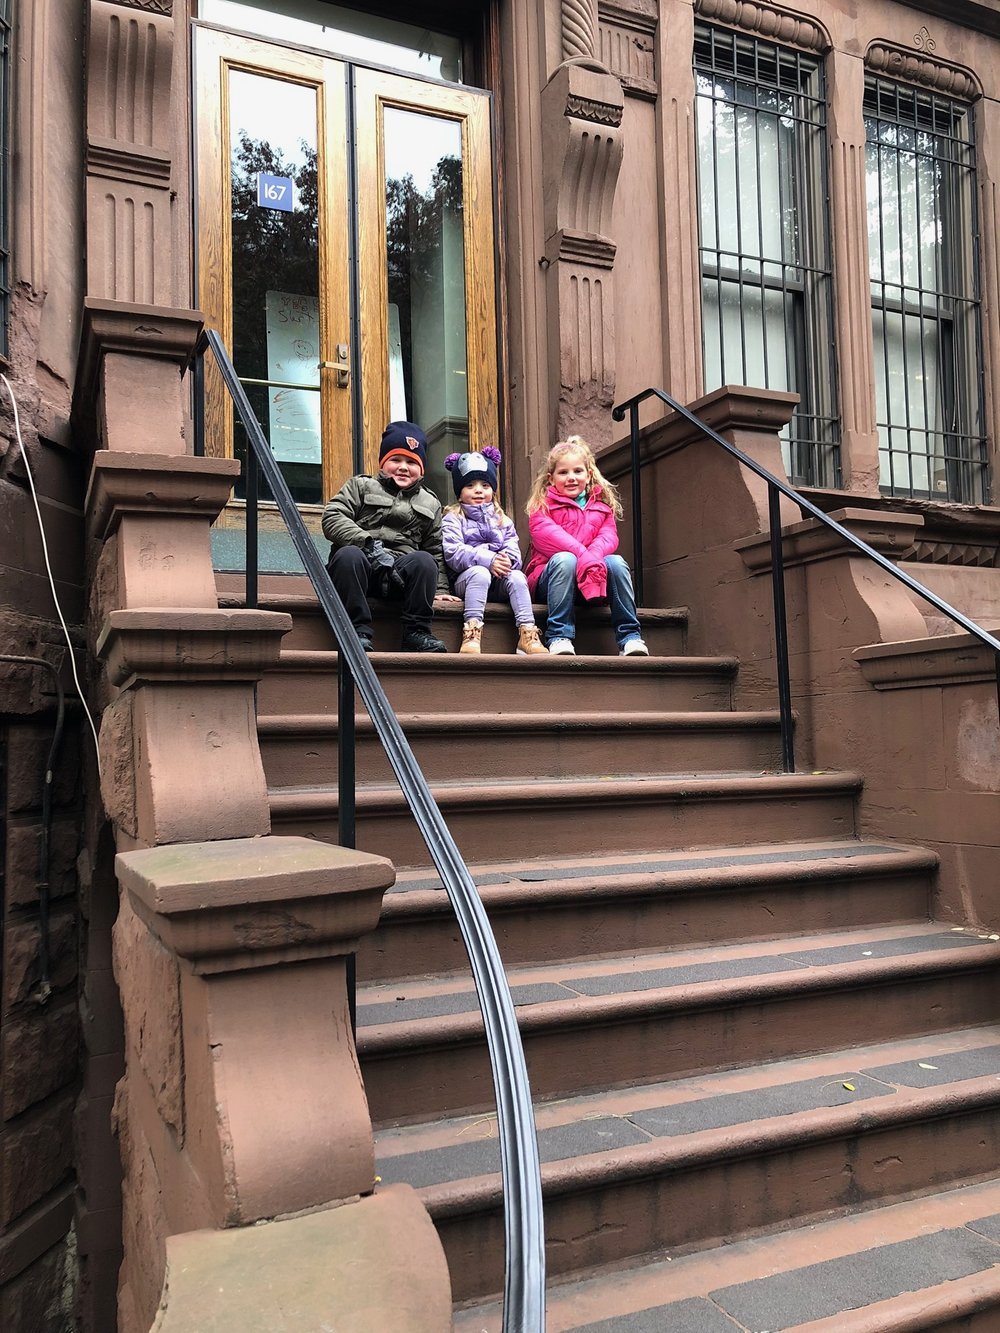 Adorable stoop pic on the UWS